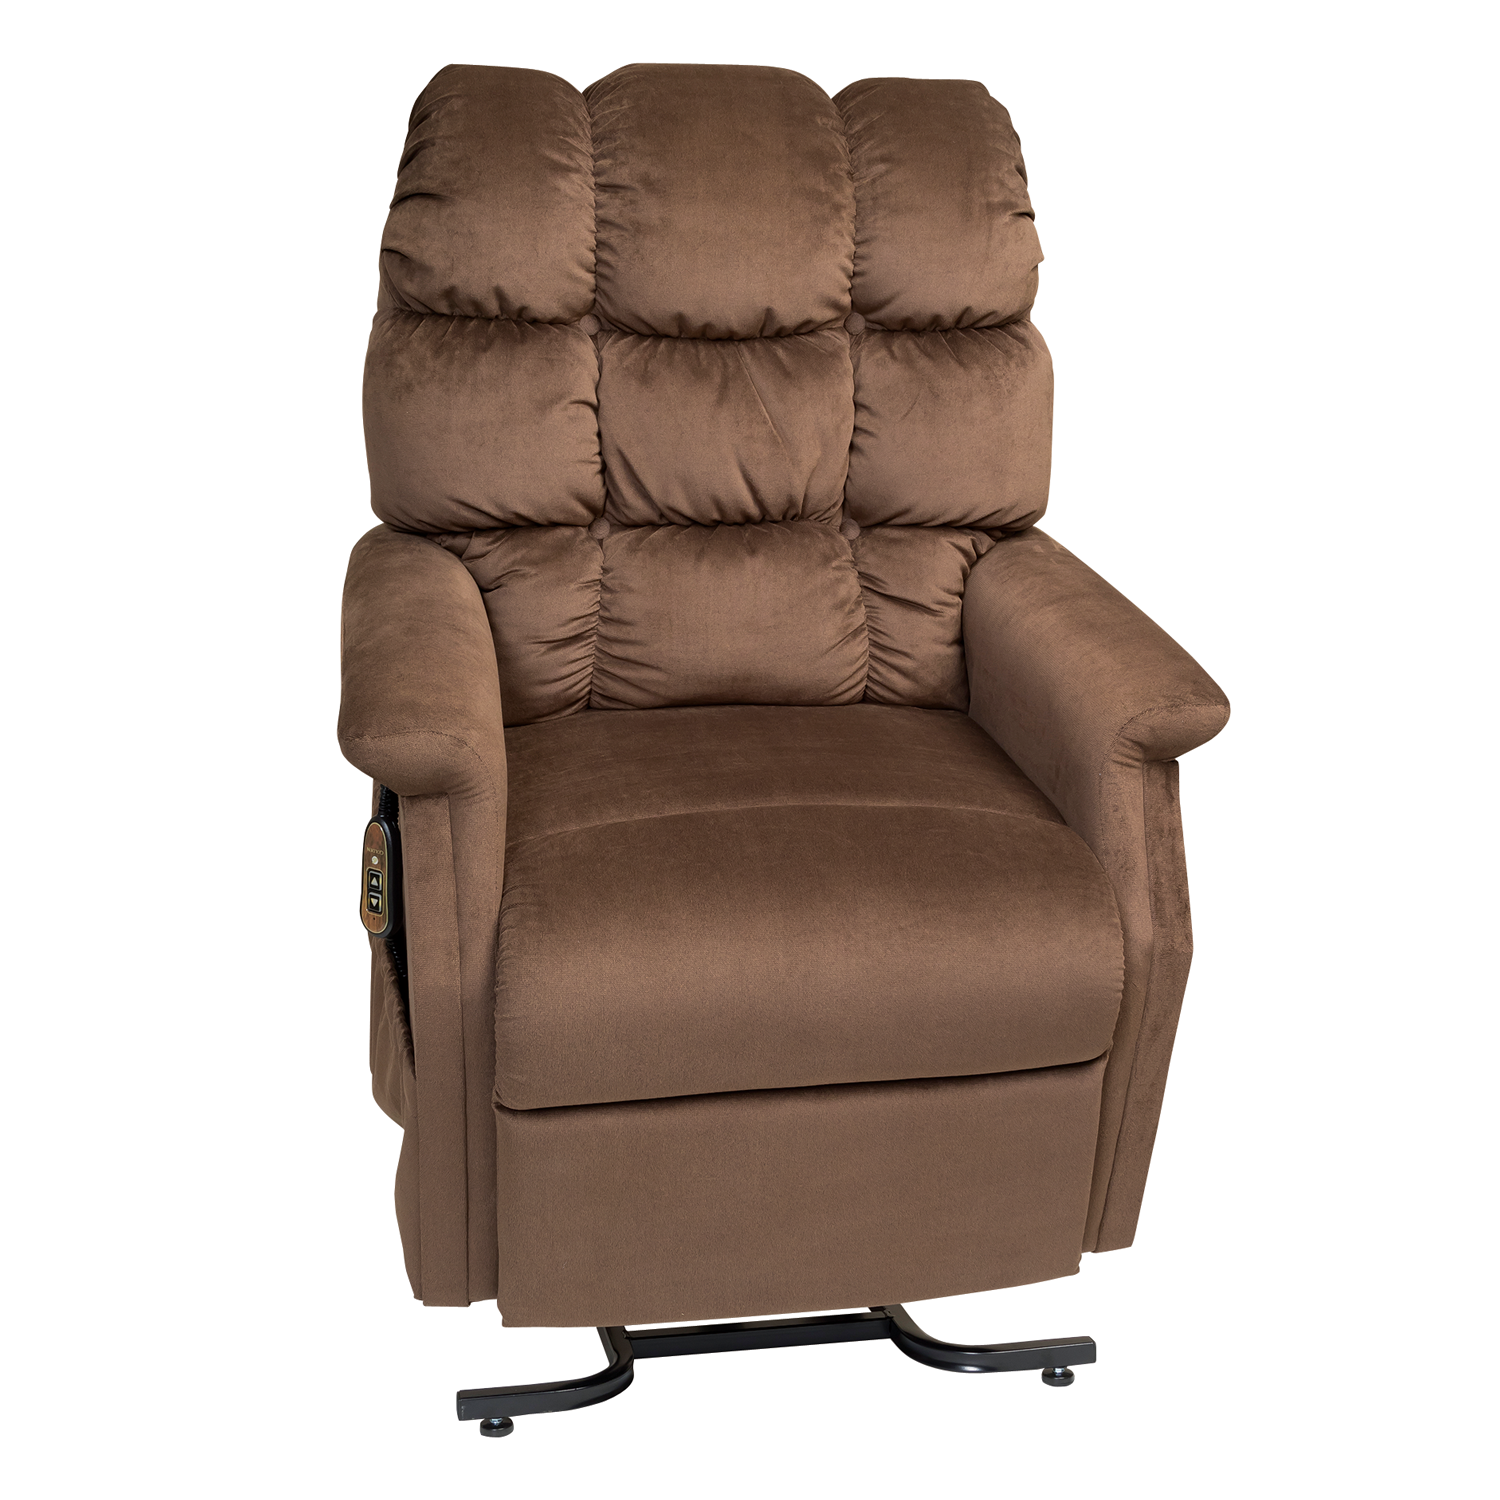 Outstanding Lift Chair Recliners Lincoln Mobility Uwap Interior Chair Design Uwaporg